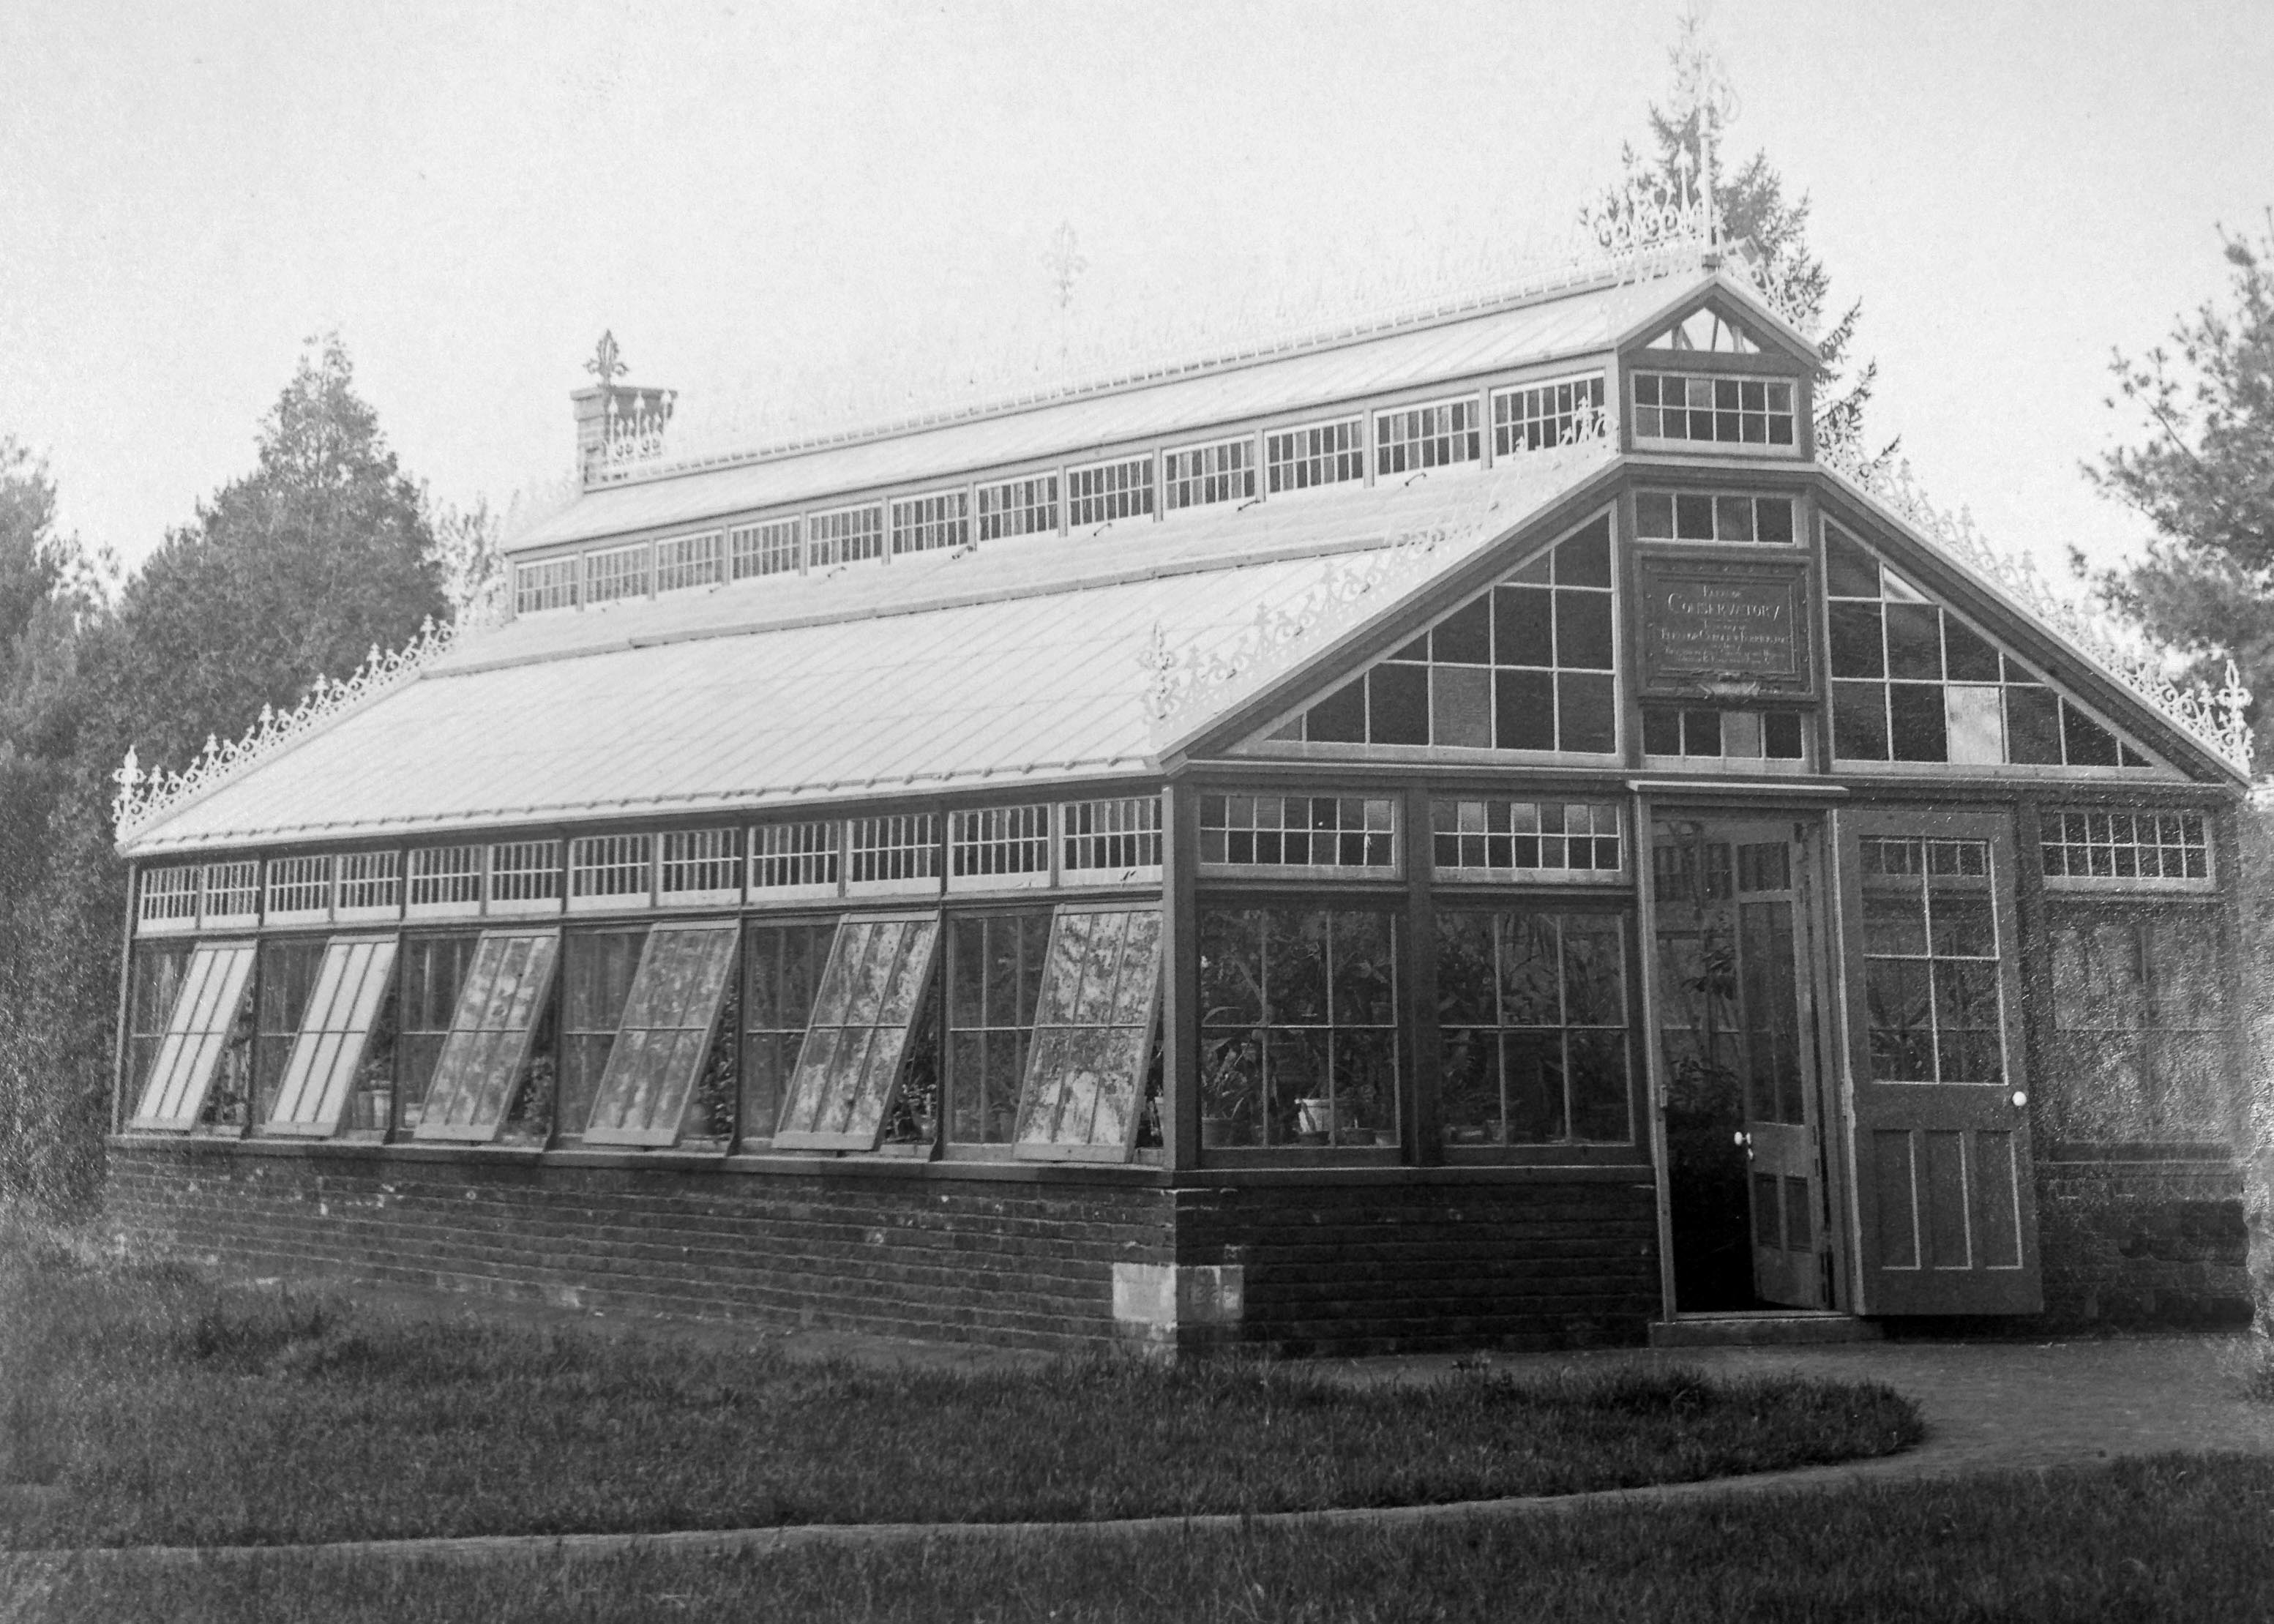 The Eleanor Conservatory was completed in October of 1886.